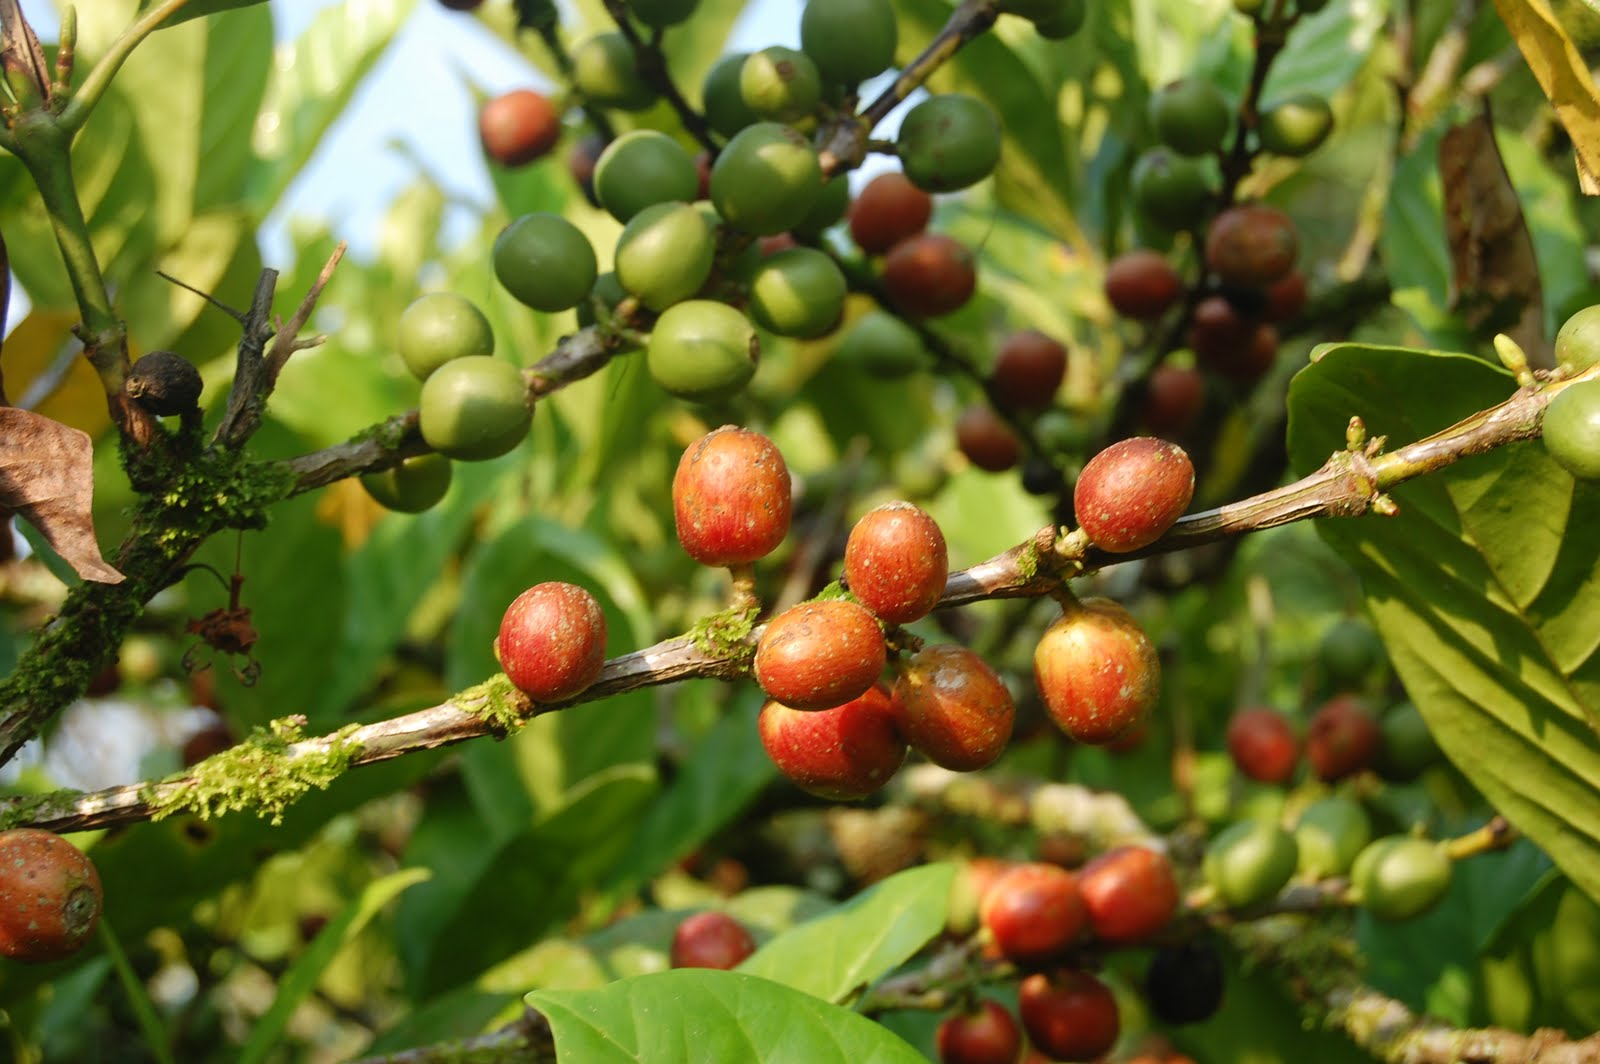 Coffee as a Superfood